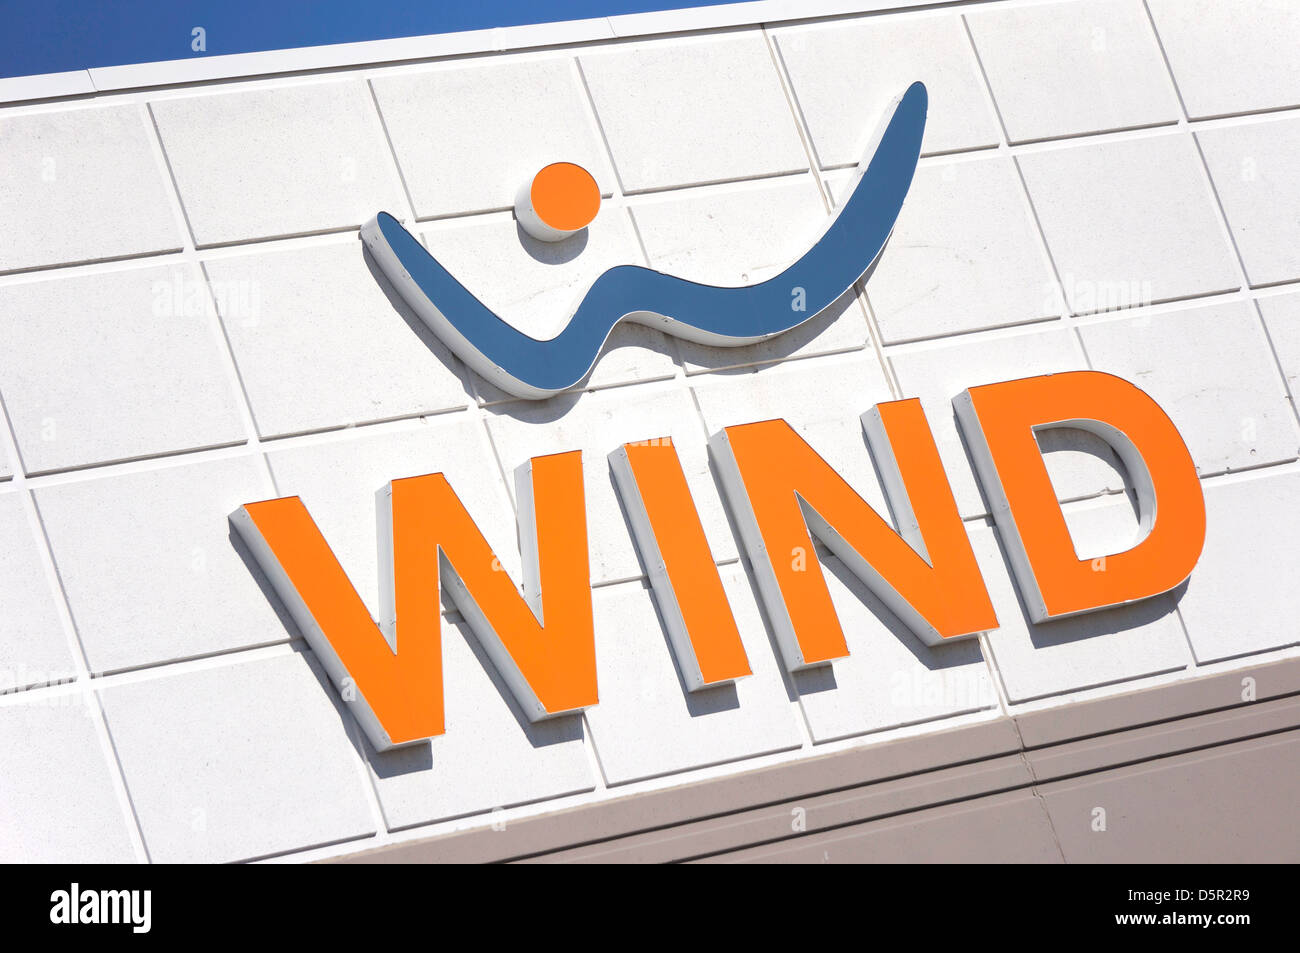 WIND, Wireless Mobile Telecommunications provider, Canada - Stock Image